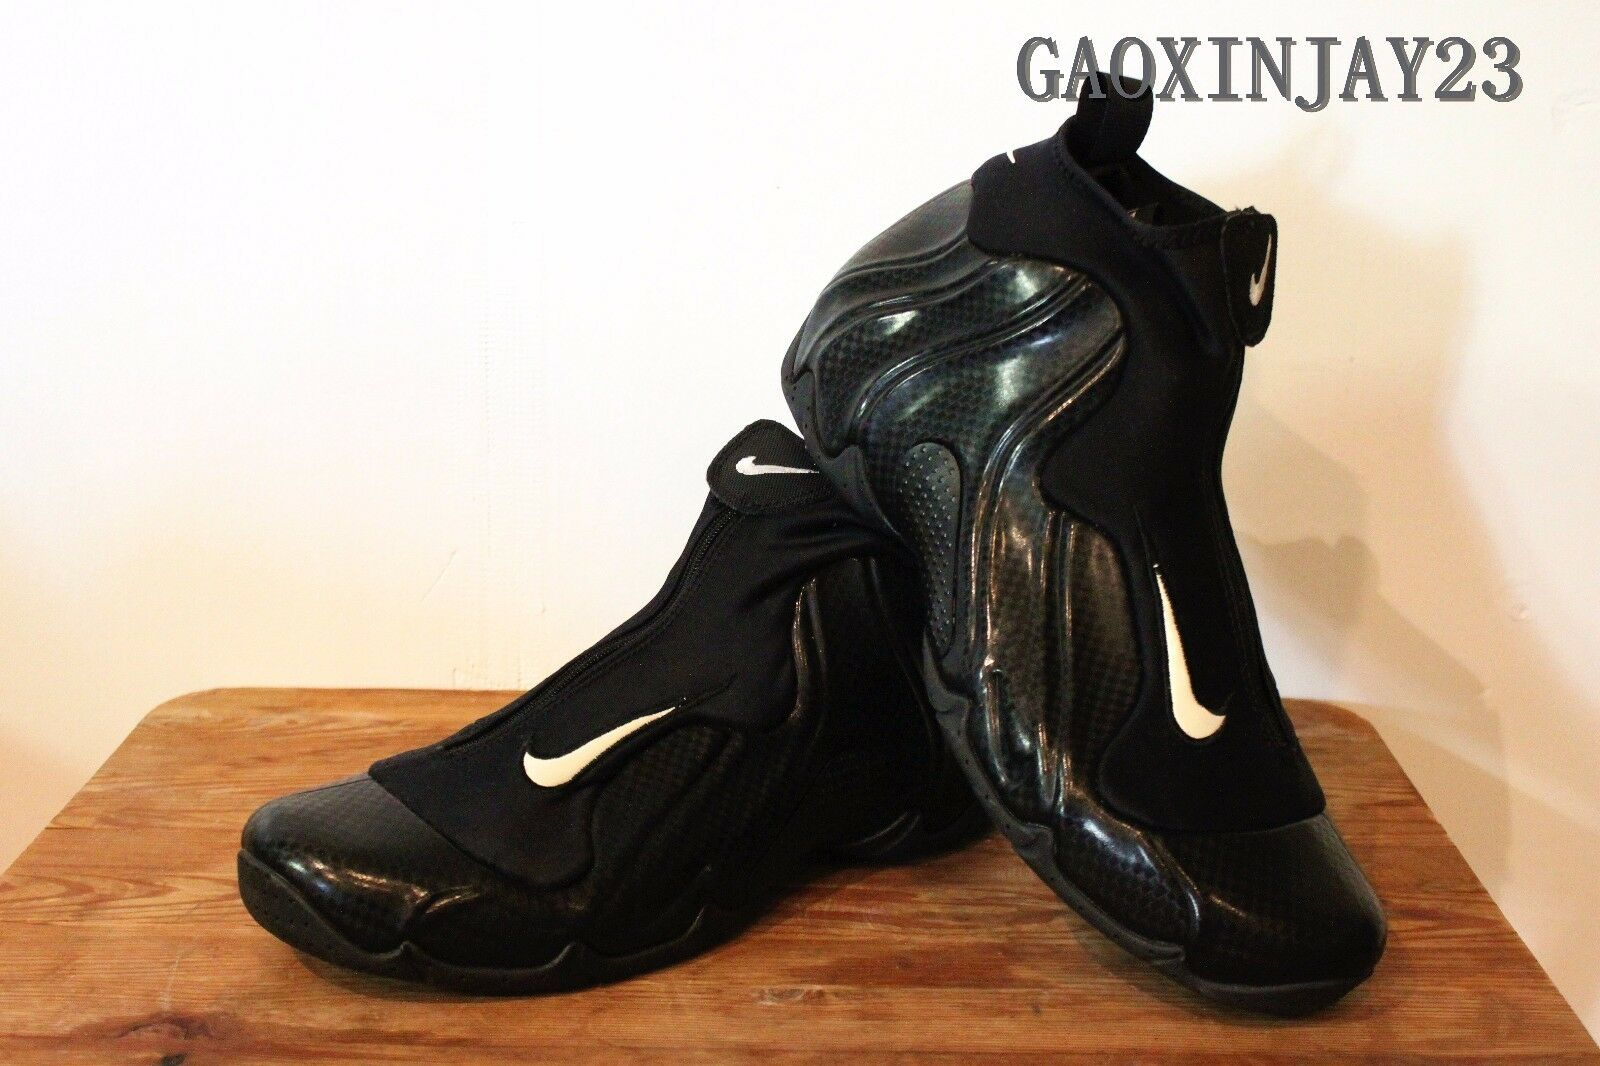 NIKE Air Flightposite Carbon Fiber Size 8.5 Great collection item Only Pair!!!